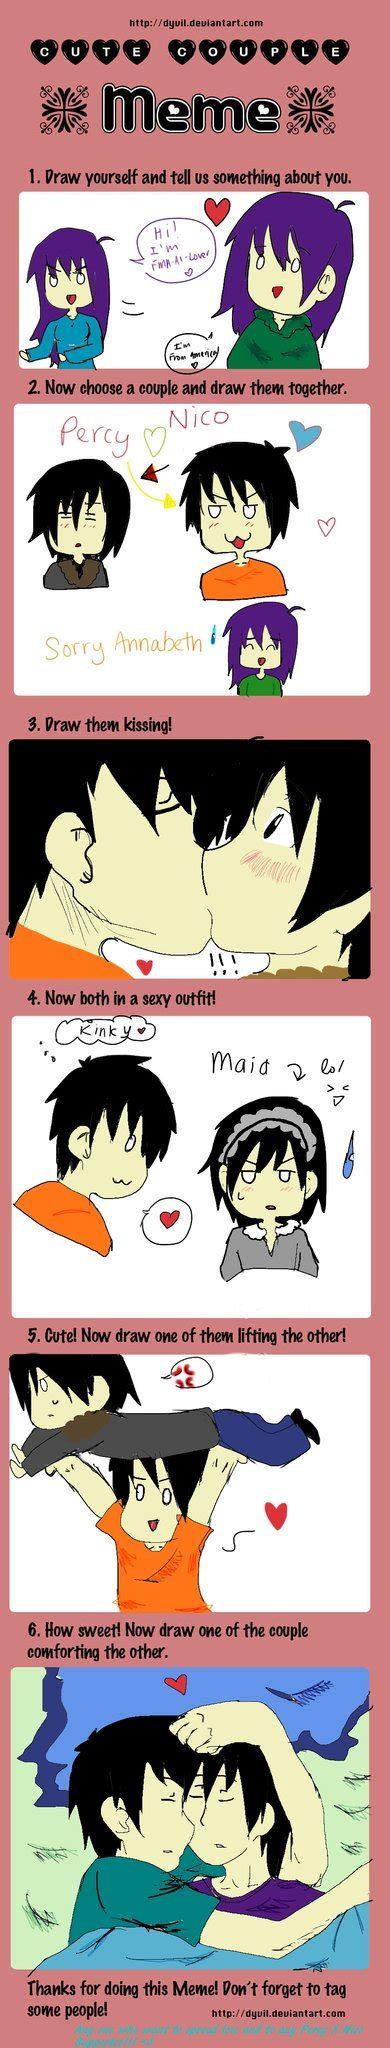 Cute Couple Meme - cute couple memepercy x nico by fma al lover on deviantart